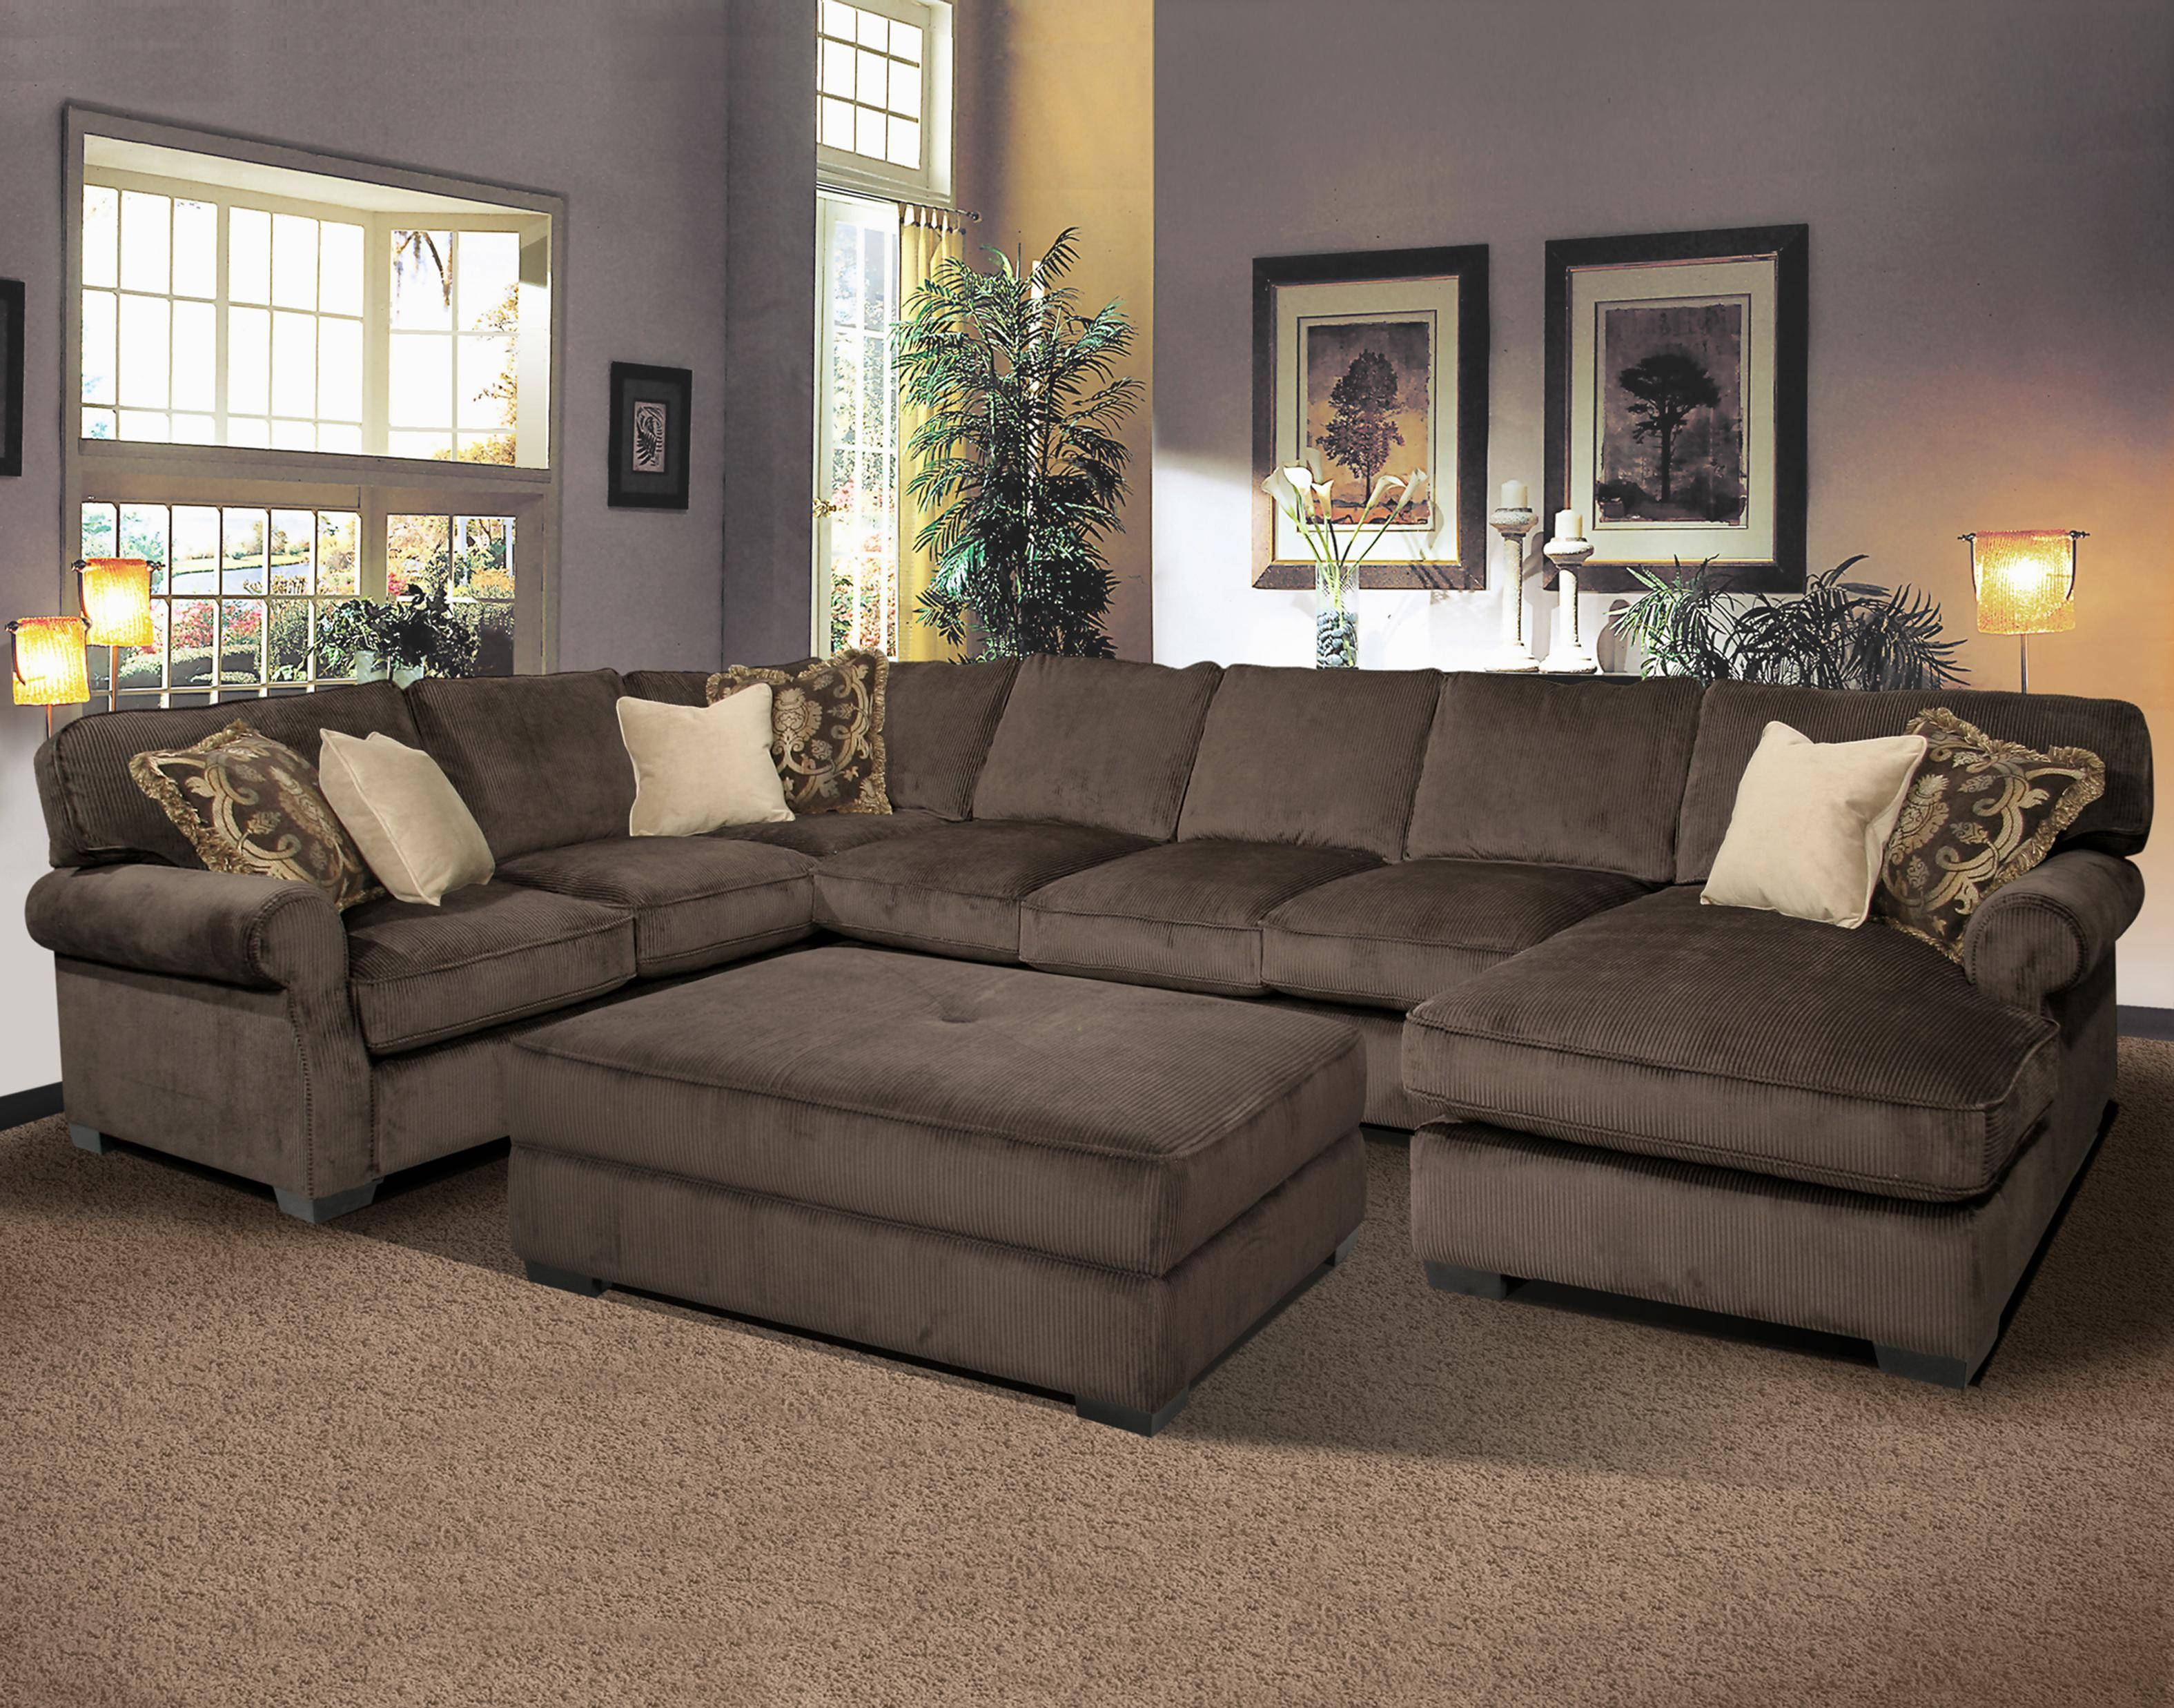 Furniture: Extra Large Sectional Sofa | Oversized Sectional inside Sofas and Sectionals (Image 8 of 30)